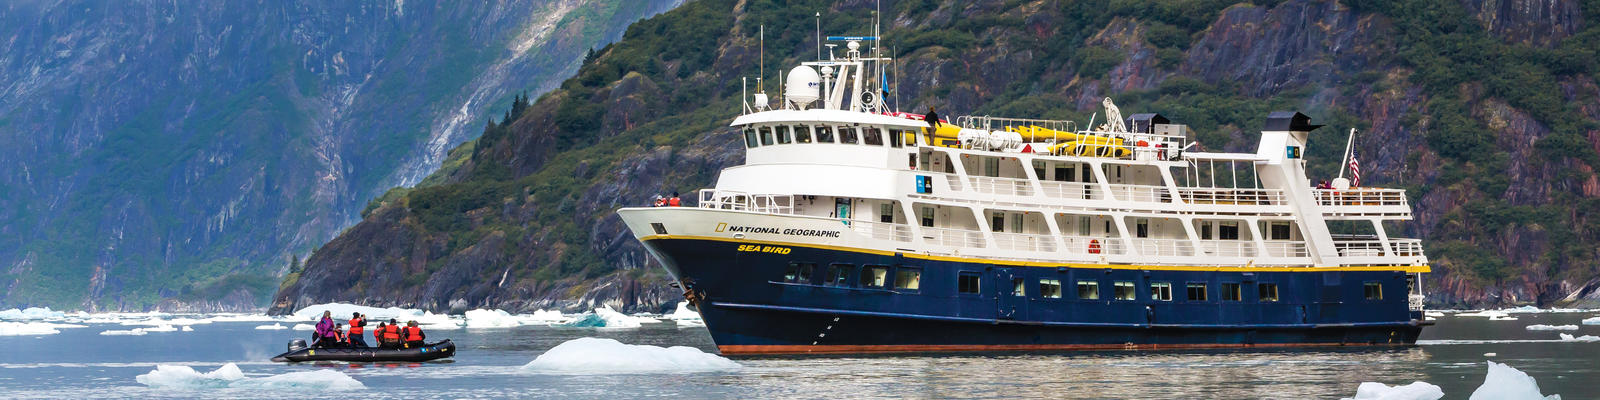 Small Ships in Alaska: A Guide to Cruising Off the Beaten Path (Photo: Lindblad Expeditions)